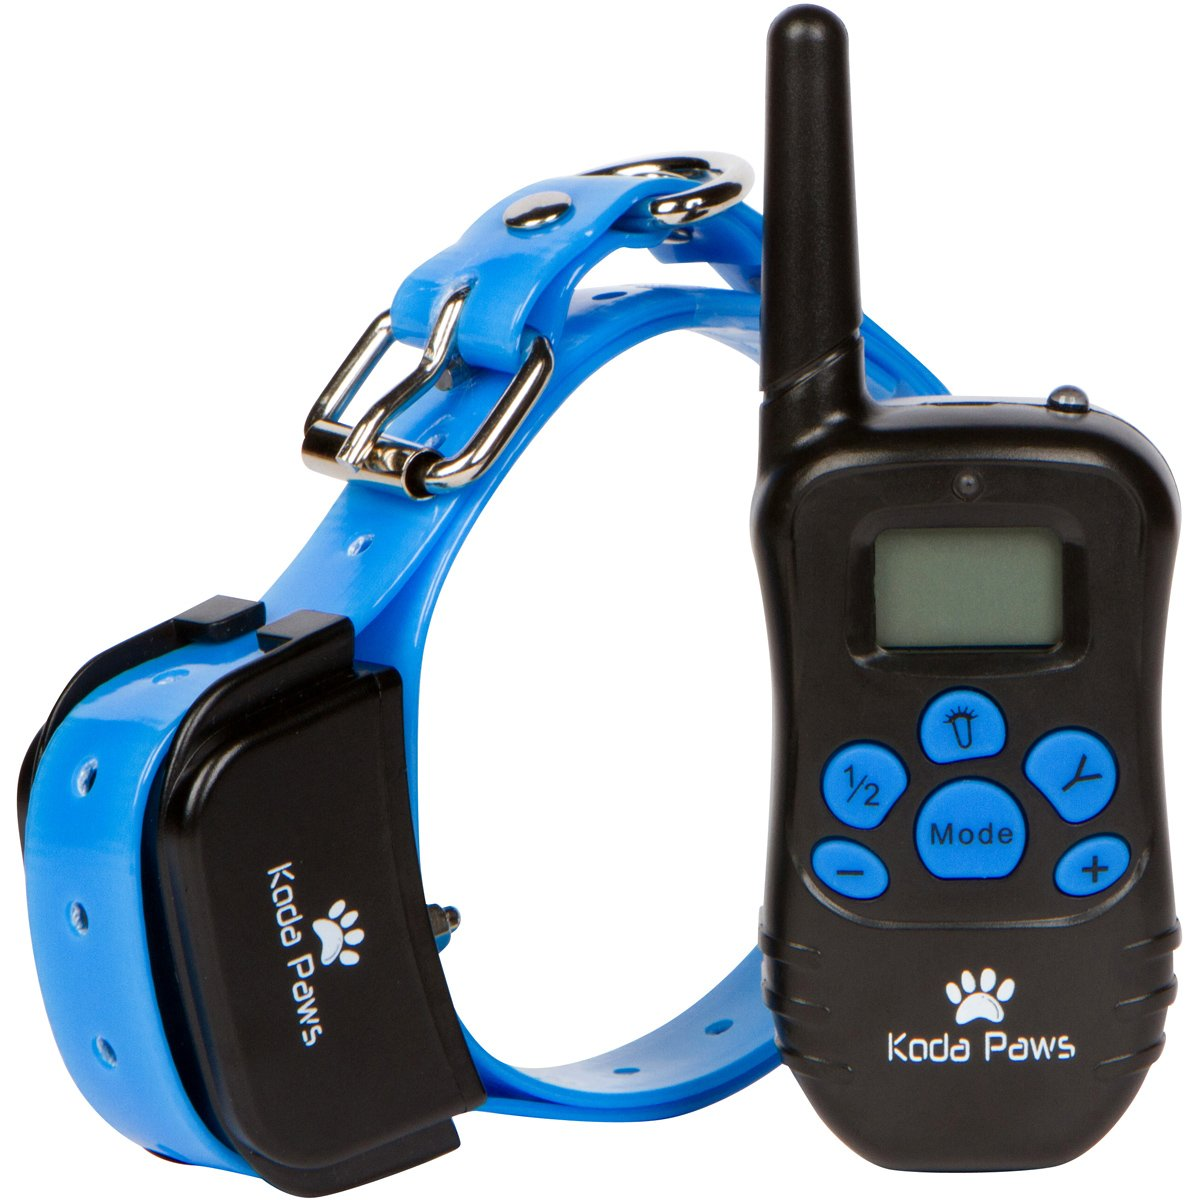 Electronic Training Collar for Dogs with Remote Control - Shock & Bark Collar for Small, Medium and Large Dogs | Waterproof & Rechargeable E-Collars | Pet Obedience Trainer & Correction Device